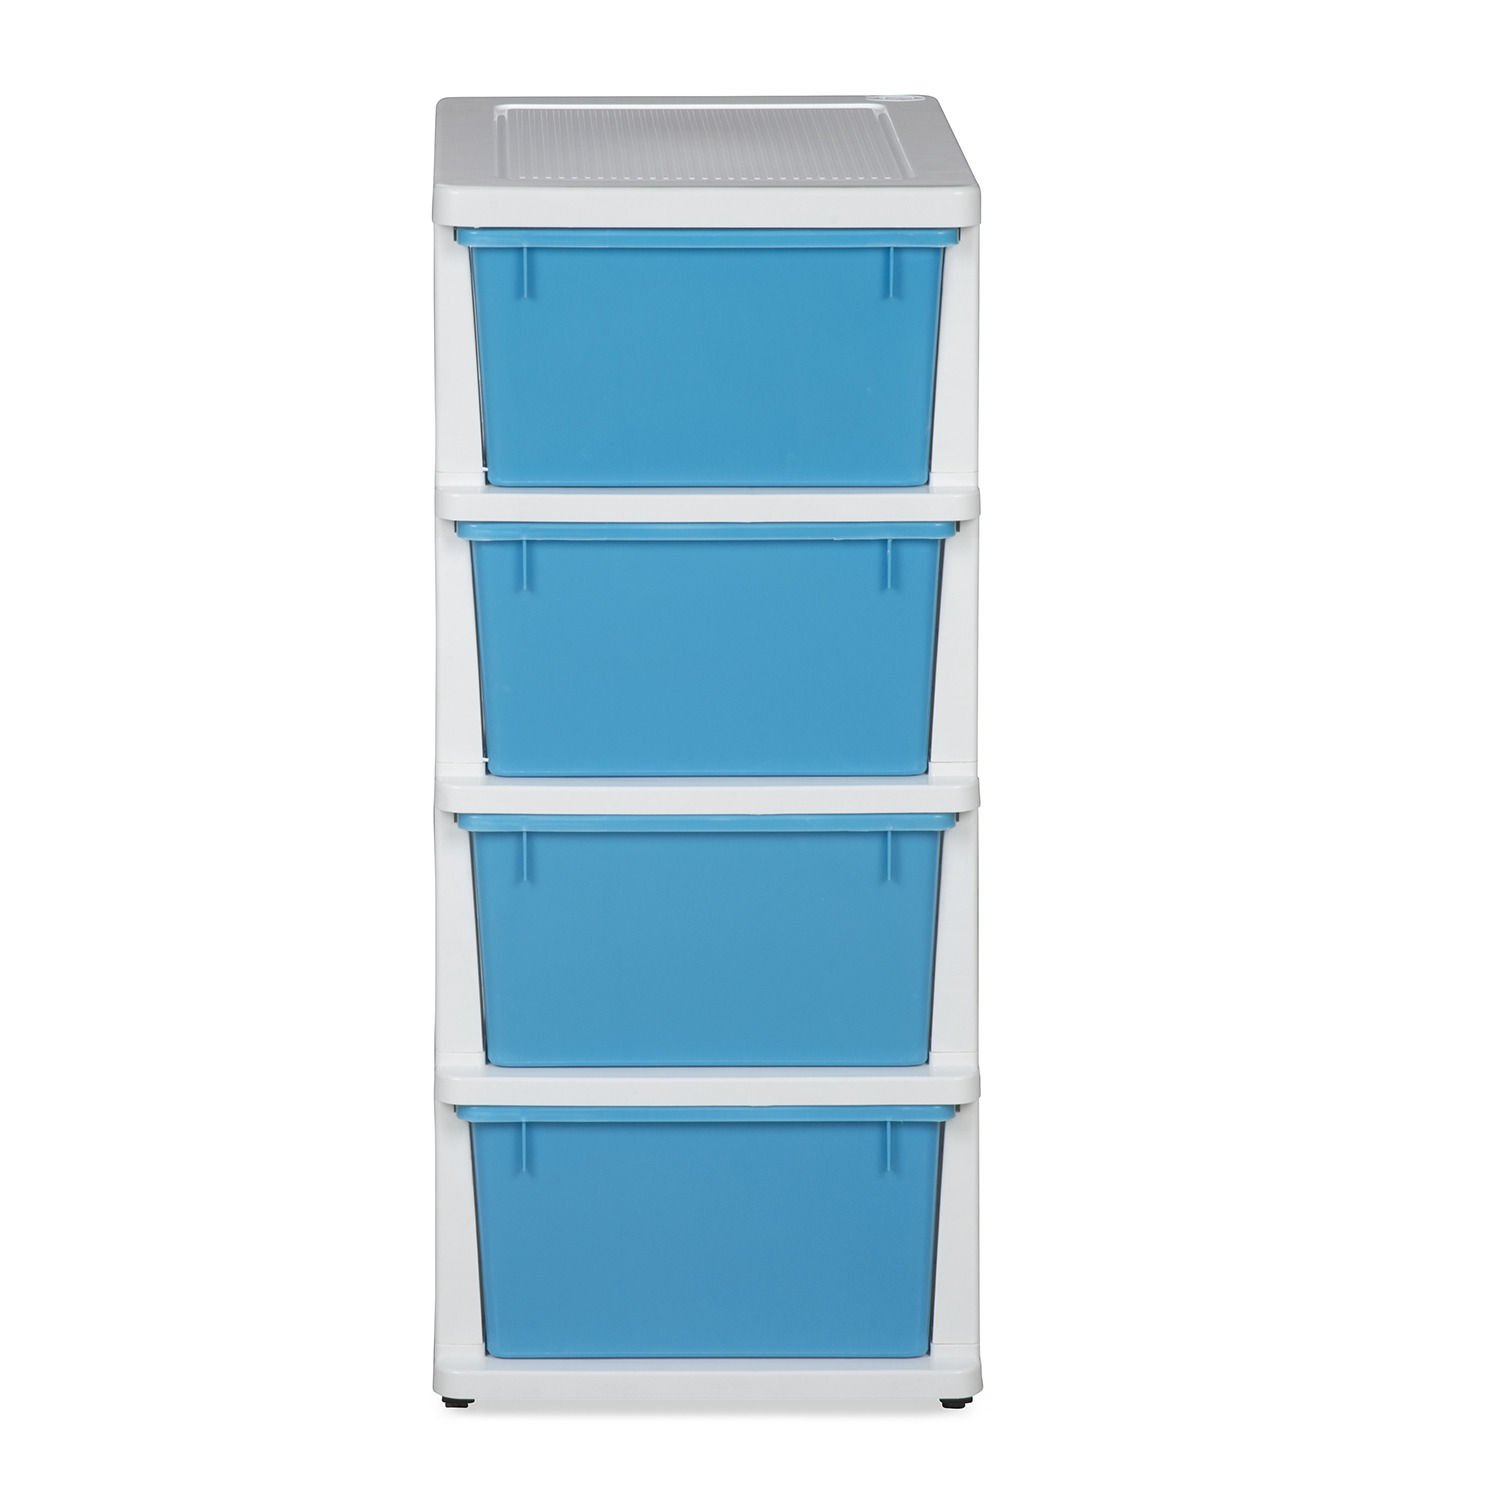 Drawers : Buy Drawers Online at Low Prices in India - Amazon.in